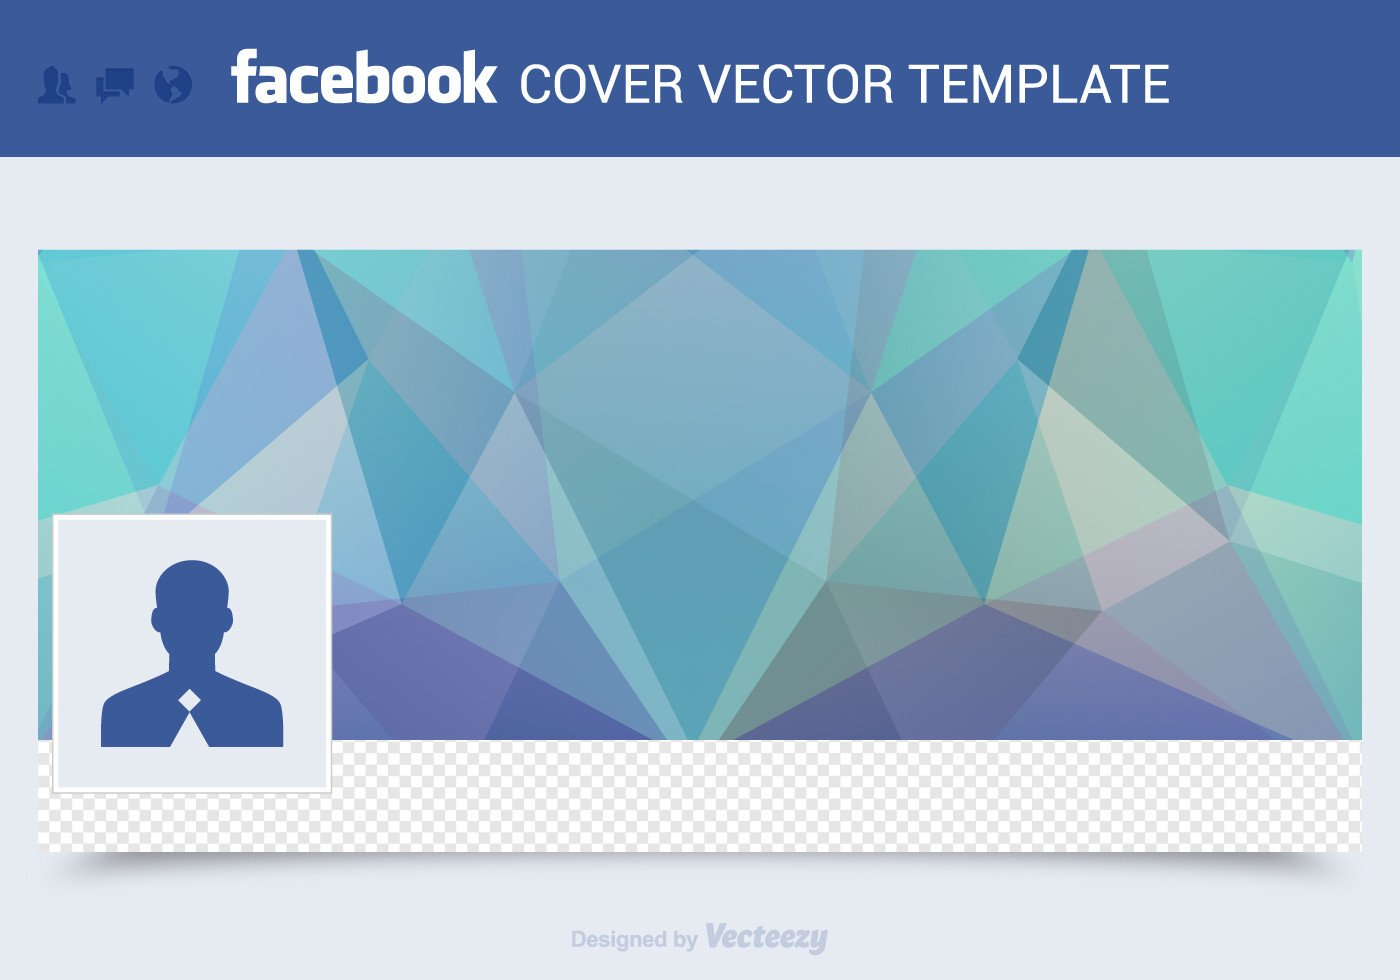 Free Facebook Covers Templates Free Cover Vector Template Download Free Vector